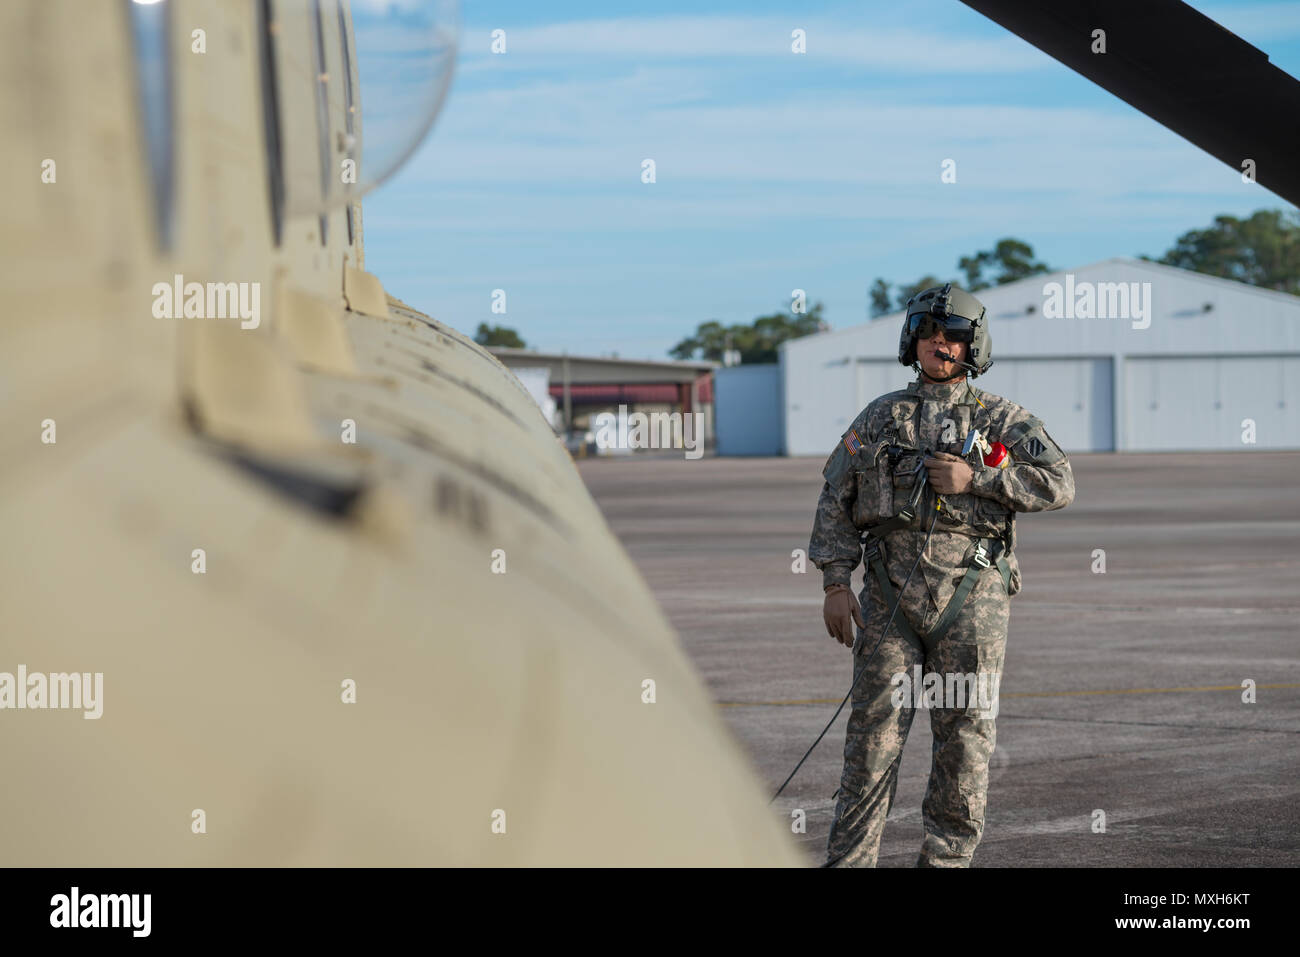 A U.S. Army Chinook crewmember assigned to the 3rd Combat Aviation Brigade prepares for a slingload training mission at Hunter Army Airfield, Nov. 6, 2016. The soldiers are transporting howitzers to a training area on Fort Stewart in support of the 3rd Division Artillery. (U.S. Army photo by Lt. Col. Brian J. Fickel) - Stock Image